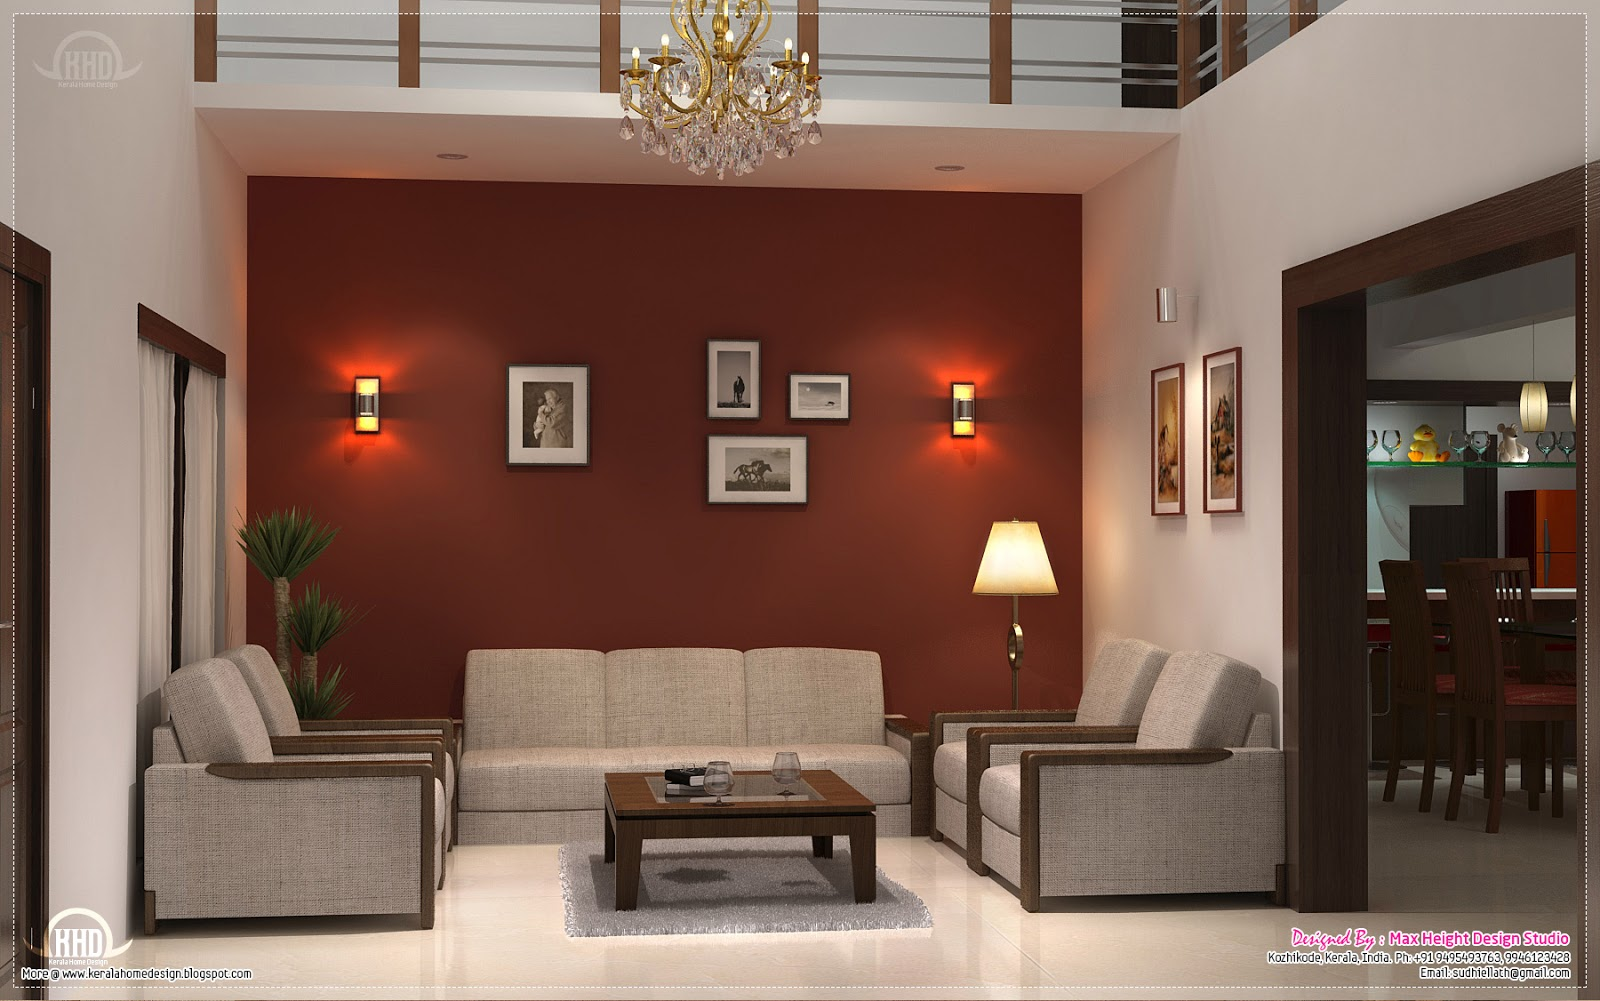 Home interior design ideas kerala home design and floor for 1 bhk living room interior